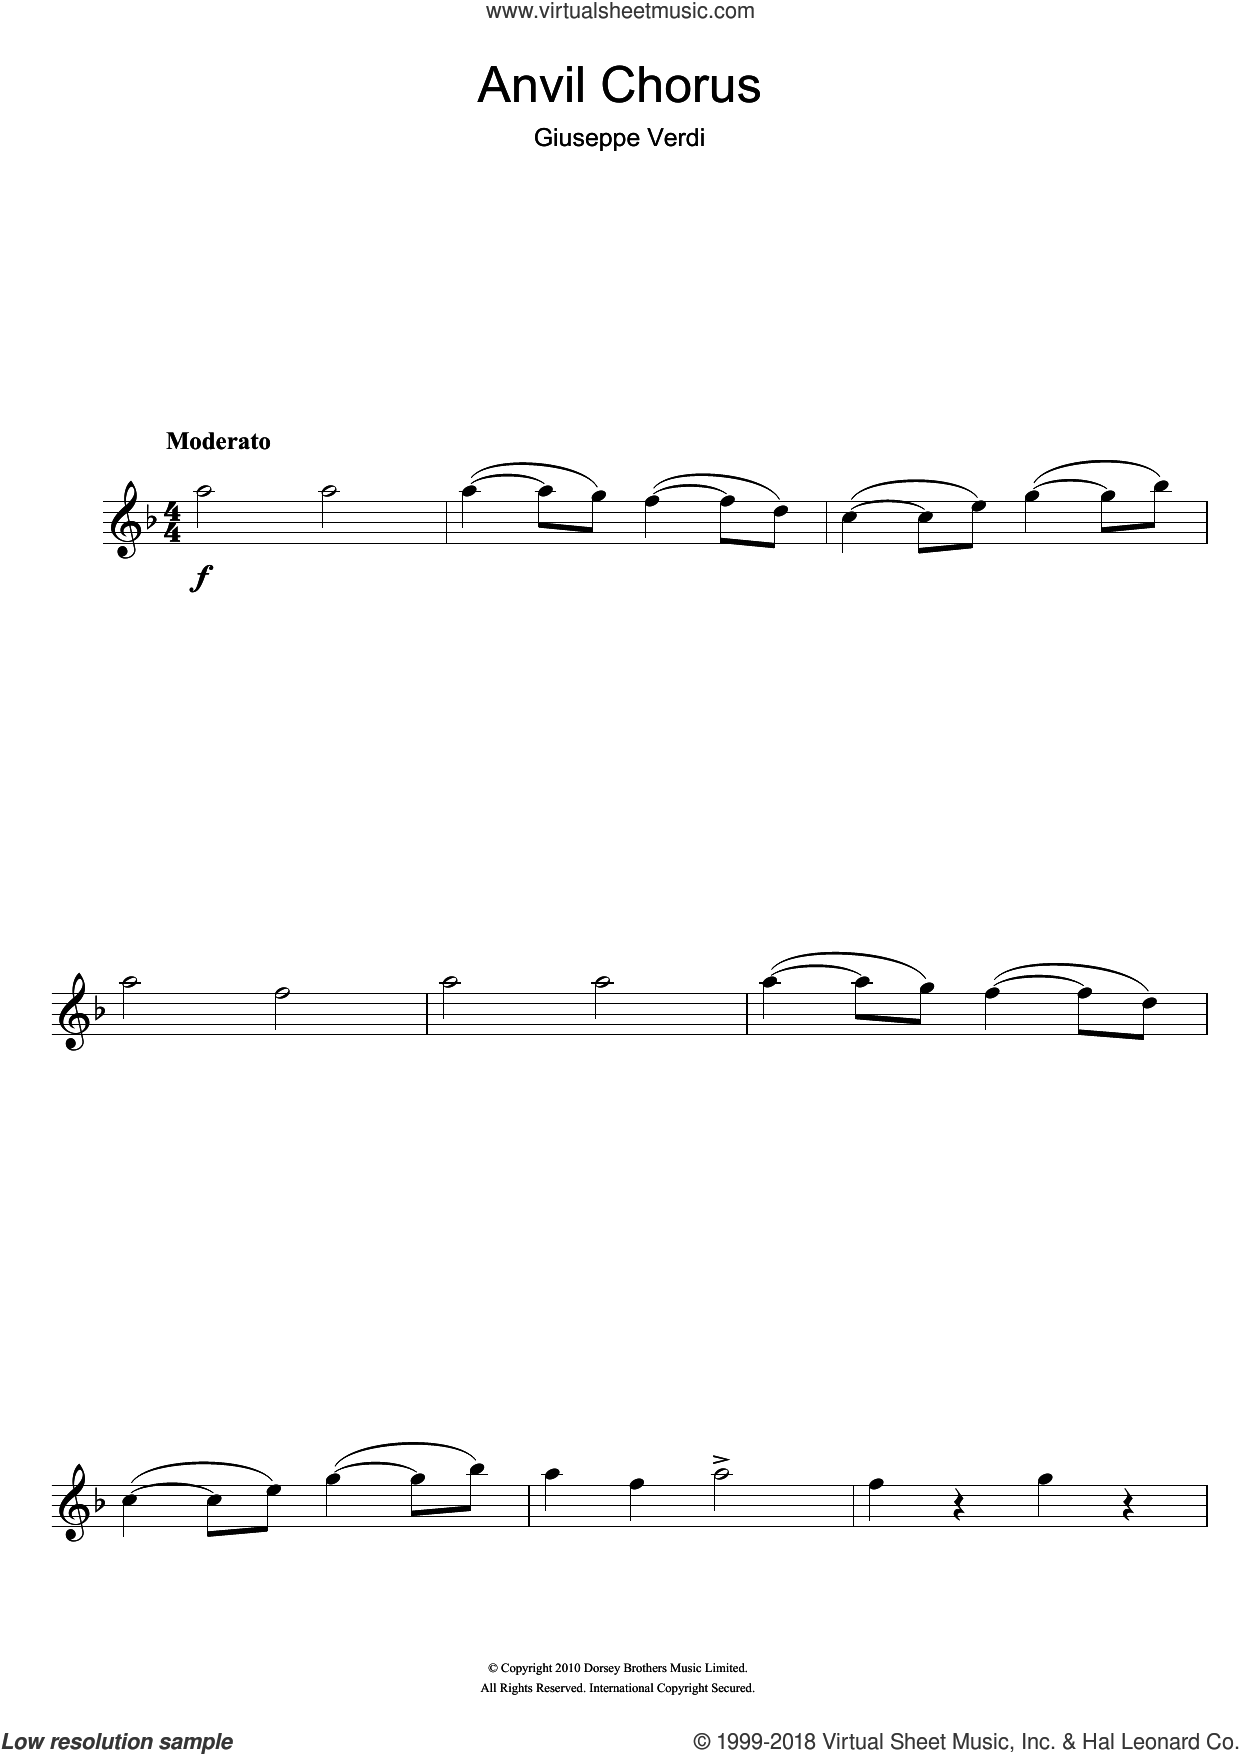 Anvil Chorus (from Il Trovatore) sheet music for flute solo by Giuseppe Verdi, classical score, intermediate skill level